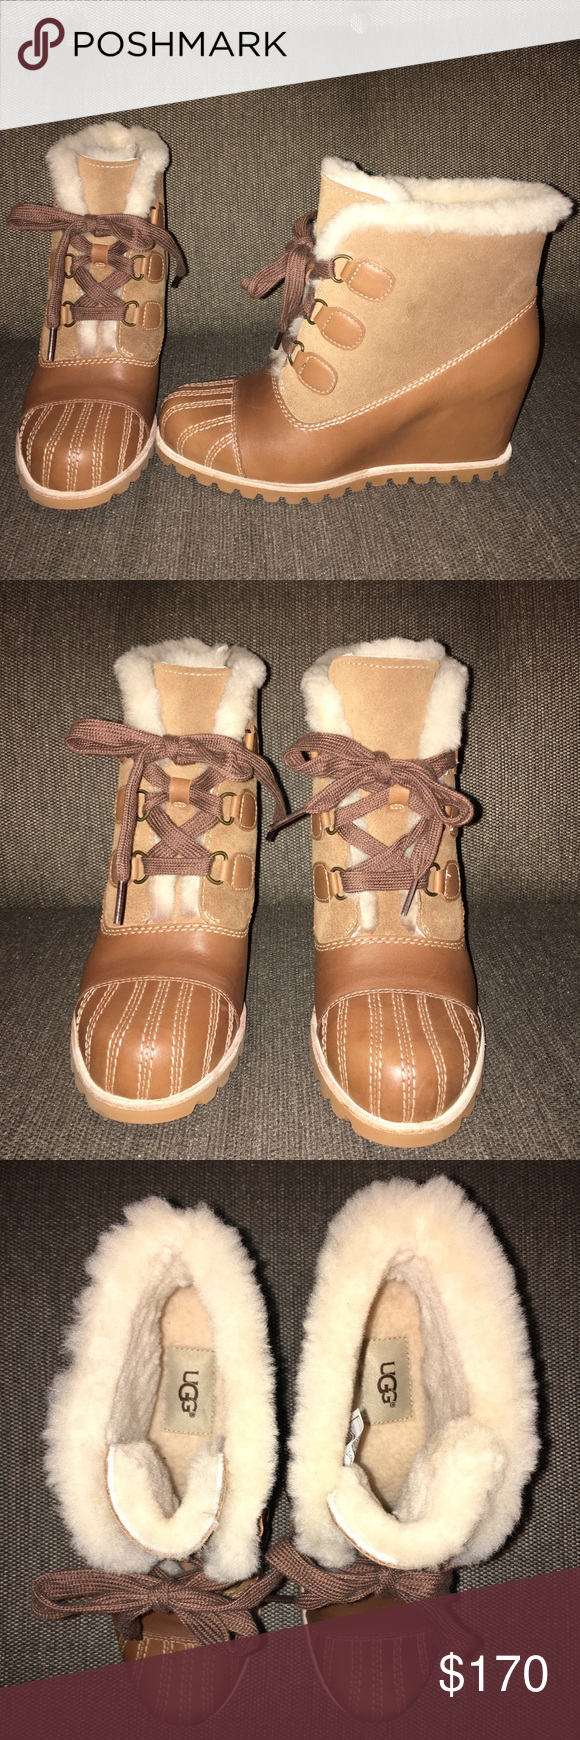 3b992e6a2c0 New Ugg Alasdair Waterproof Chestnut wedge boots New without box Ugg ...